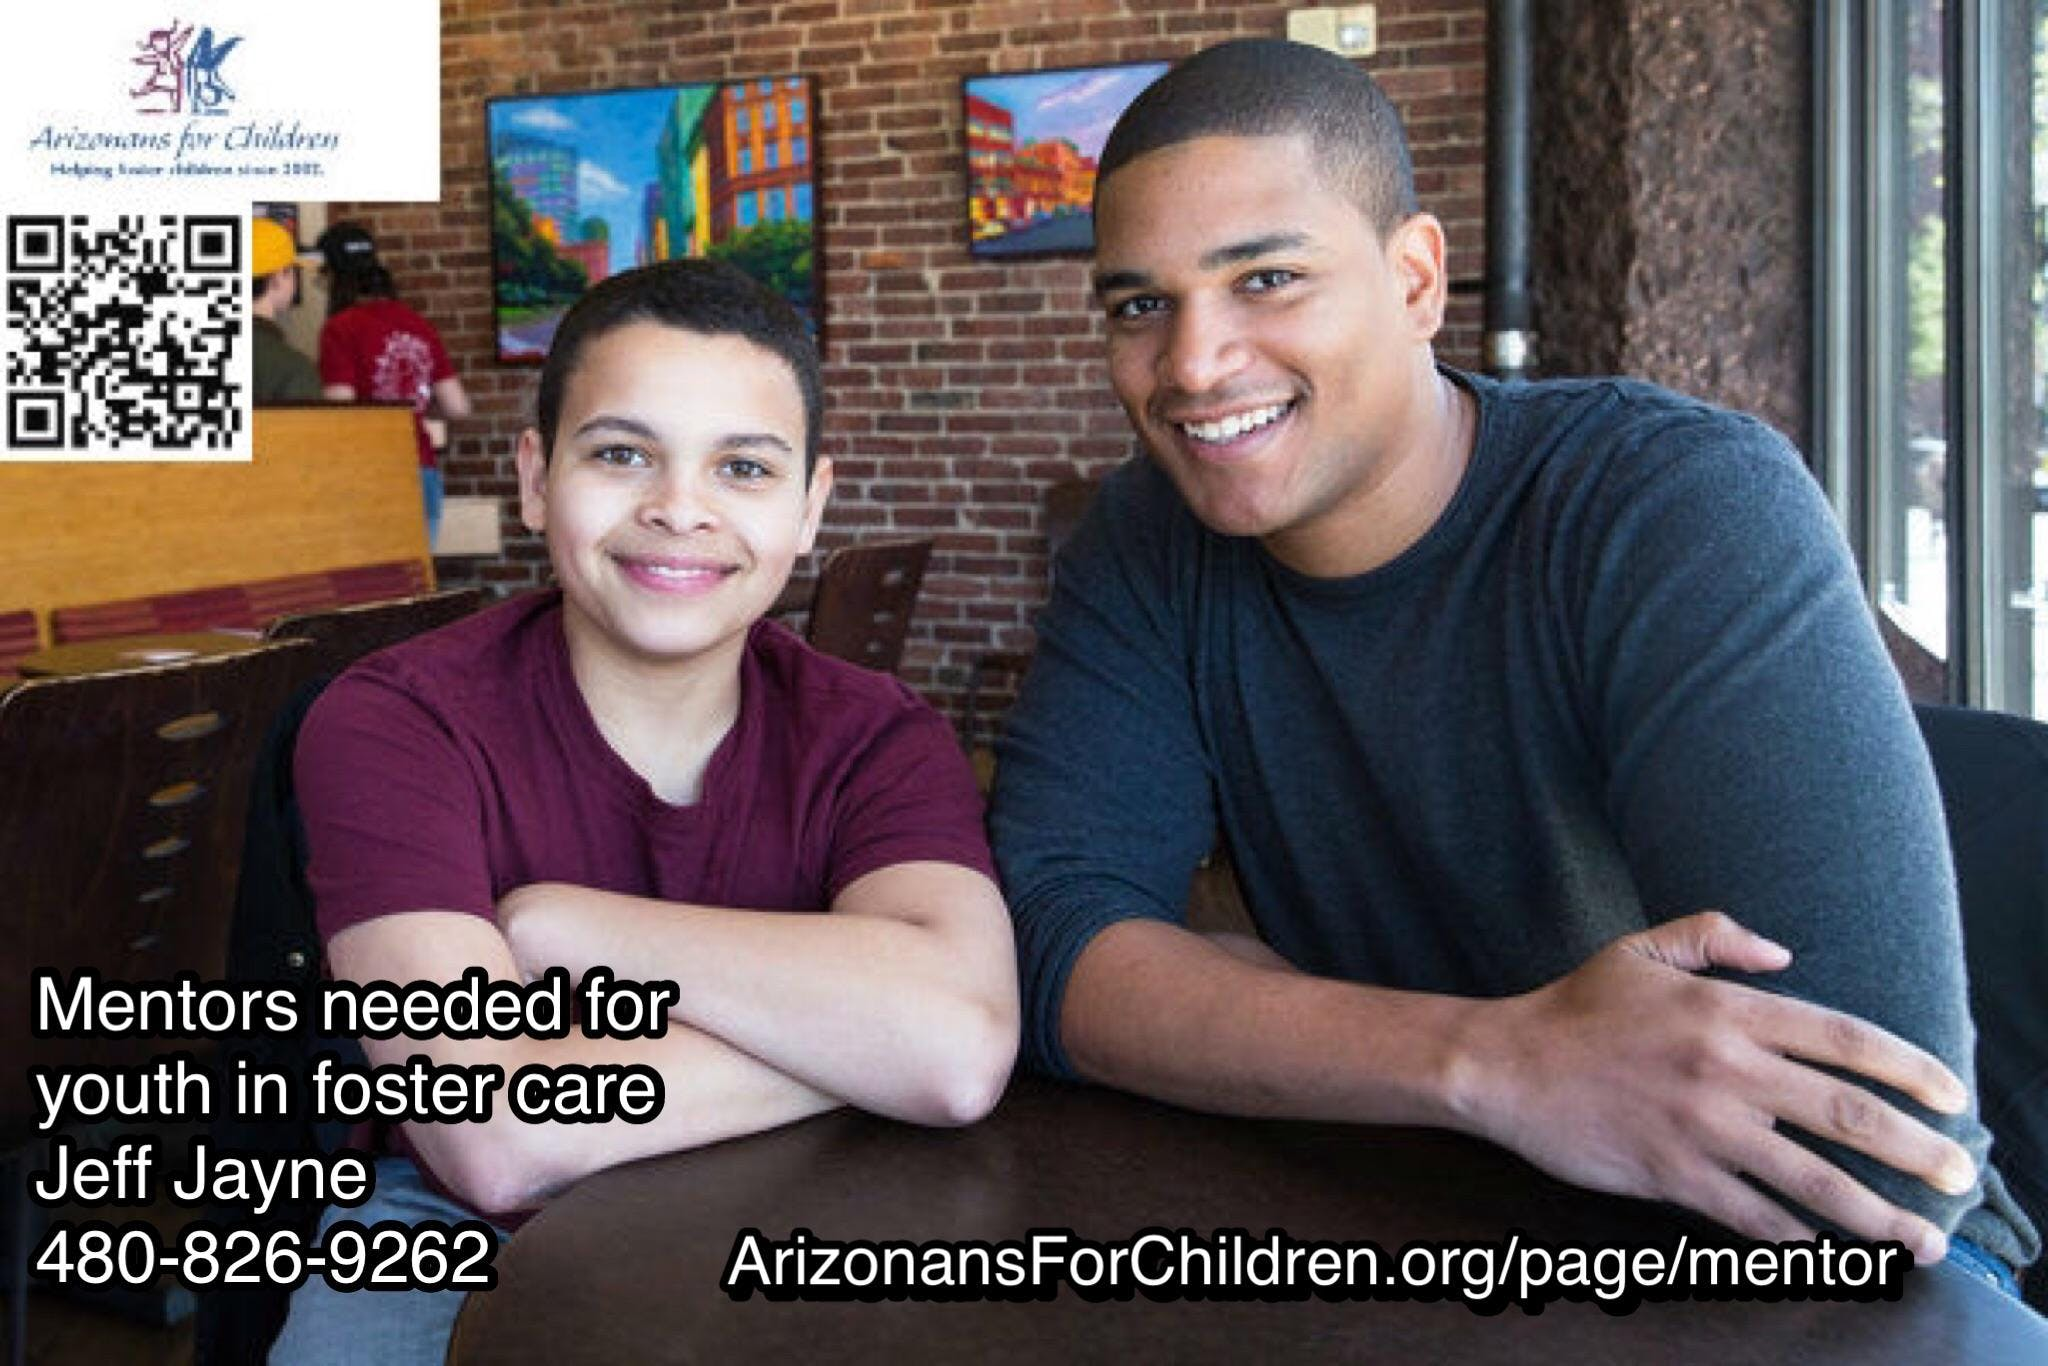 Be a mentor for a foster child